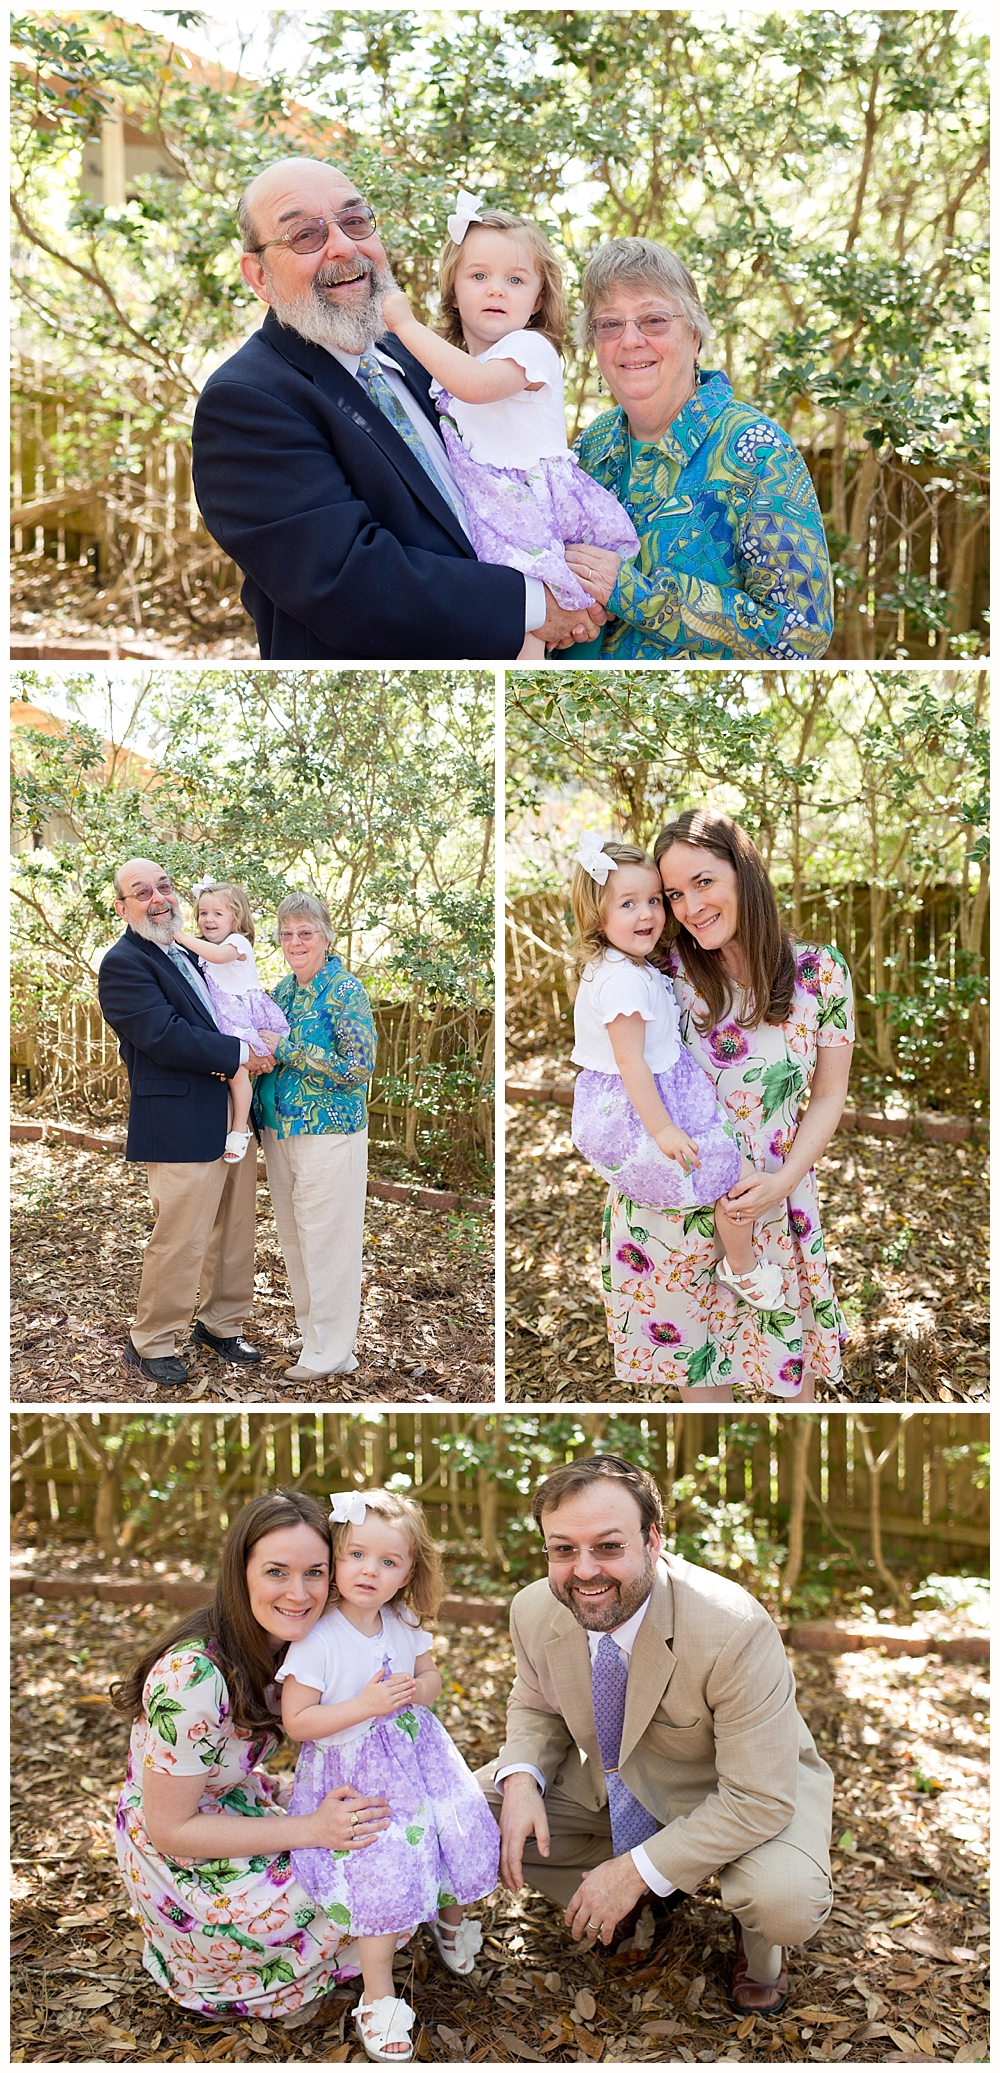 family photos before church on Easter Sunday - Ocean Springs, Mississippi